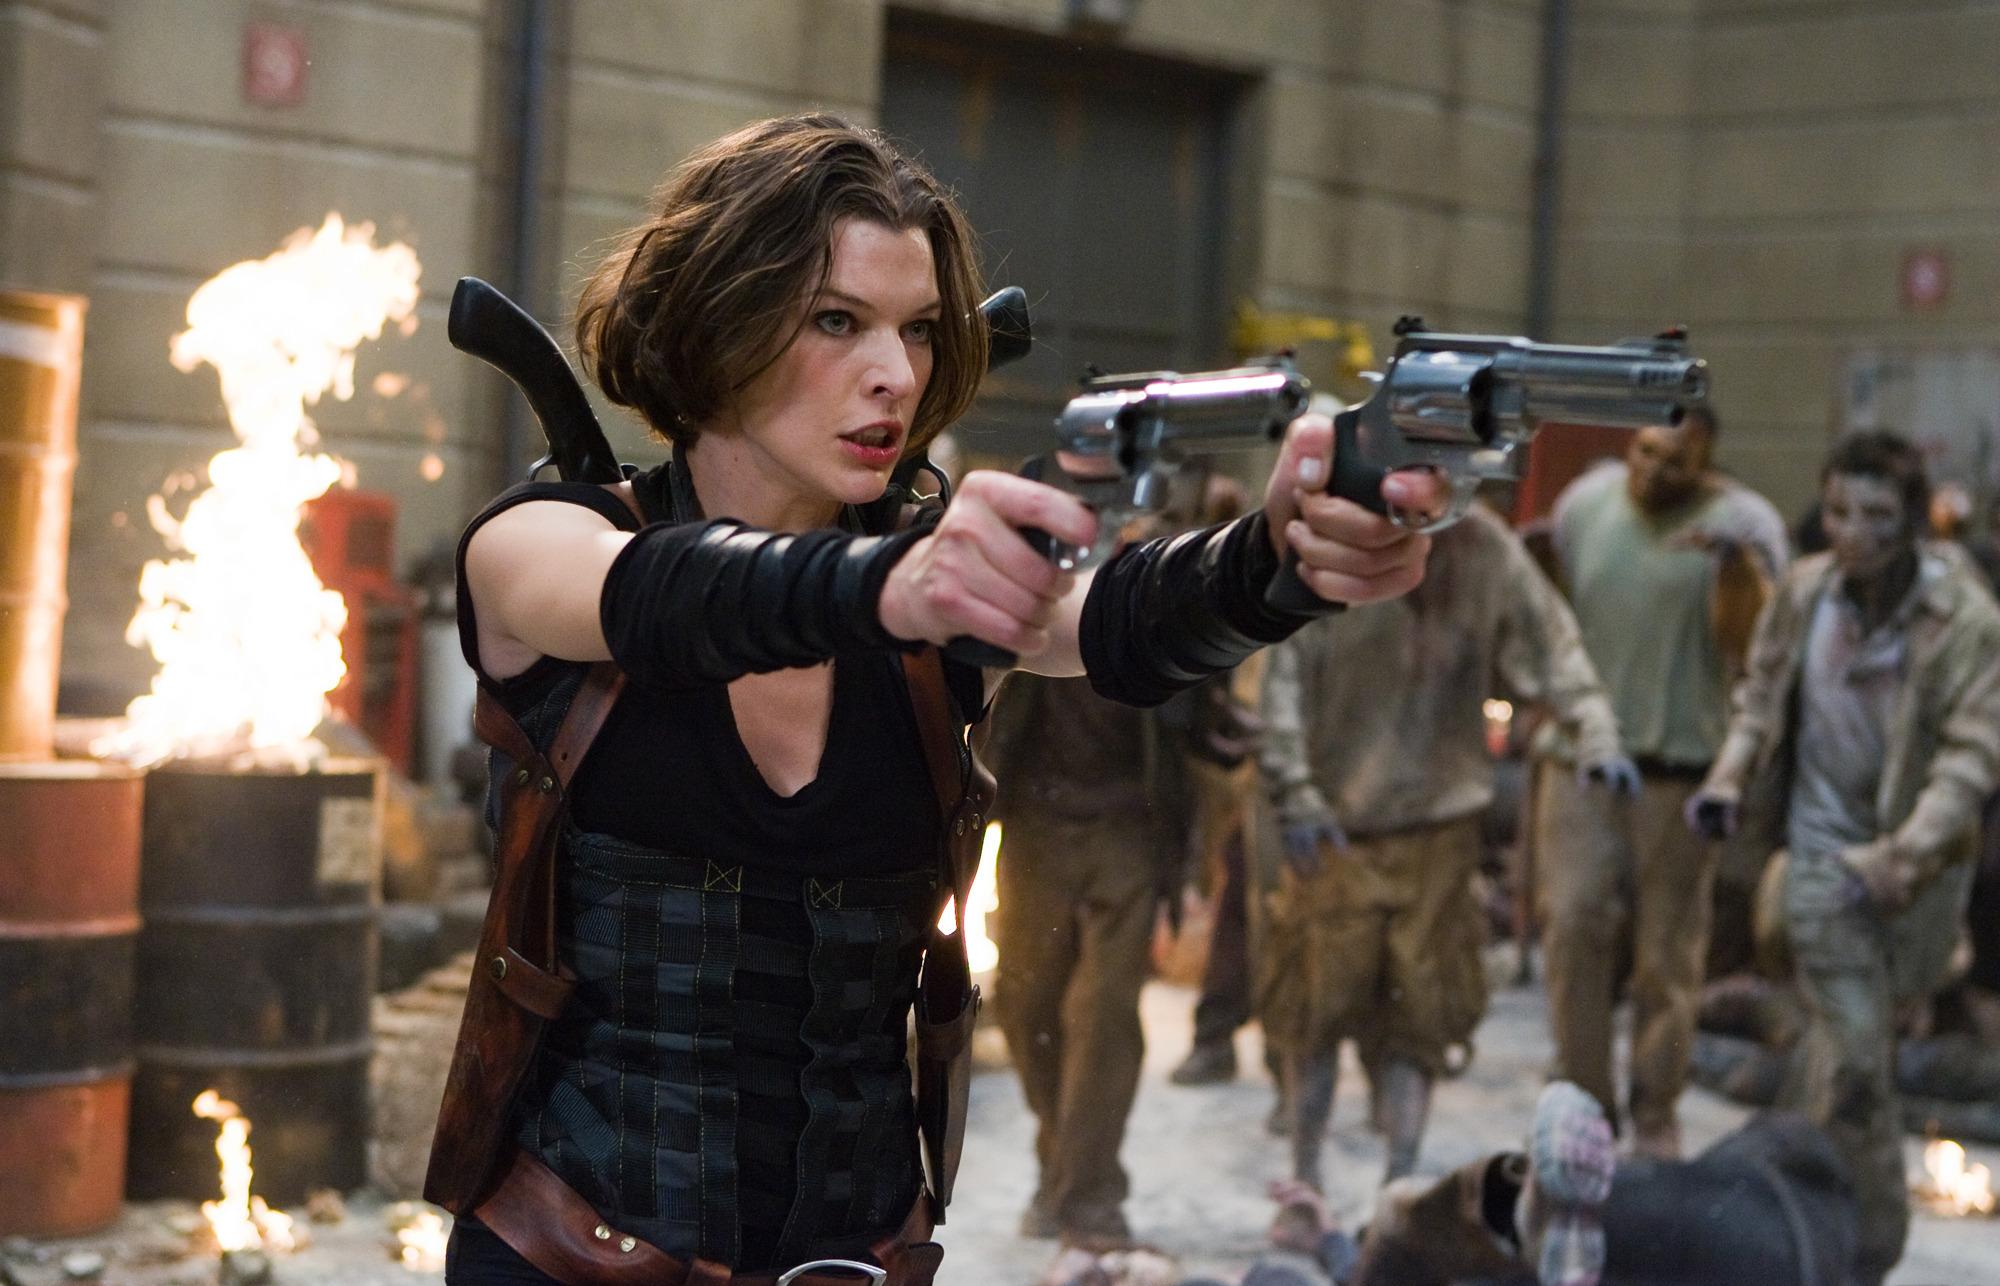 resident evil 5 full movie download in hindi dubbed